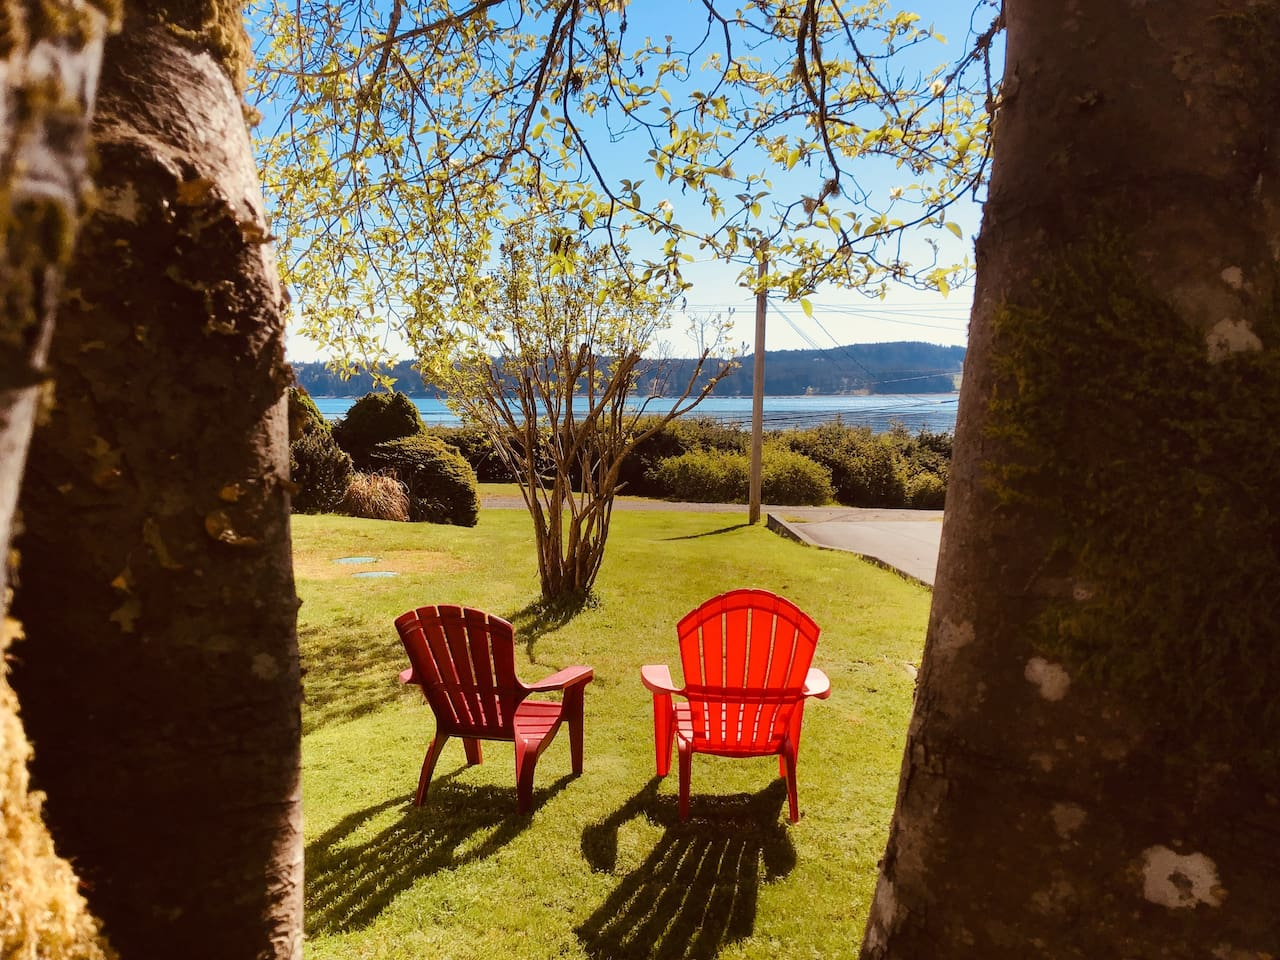 Enjoy the ocean view seated in our red Adirondack chairs.  This is at the side of our house for your enjoyment.  You can walk down to the road and across to the beach access from this area.If it is too cold in winter, we have blankets !